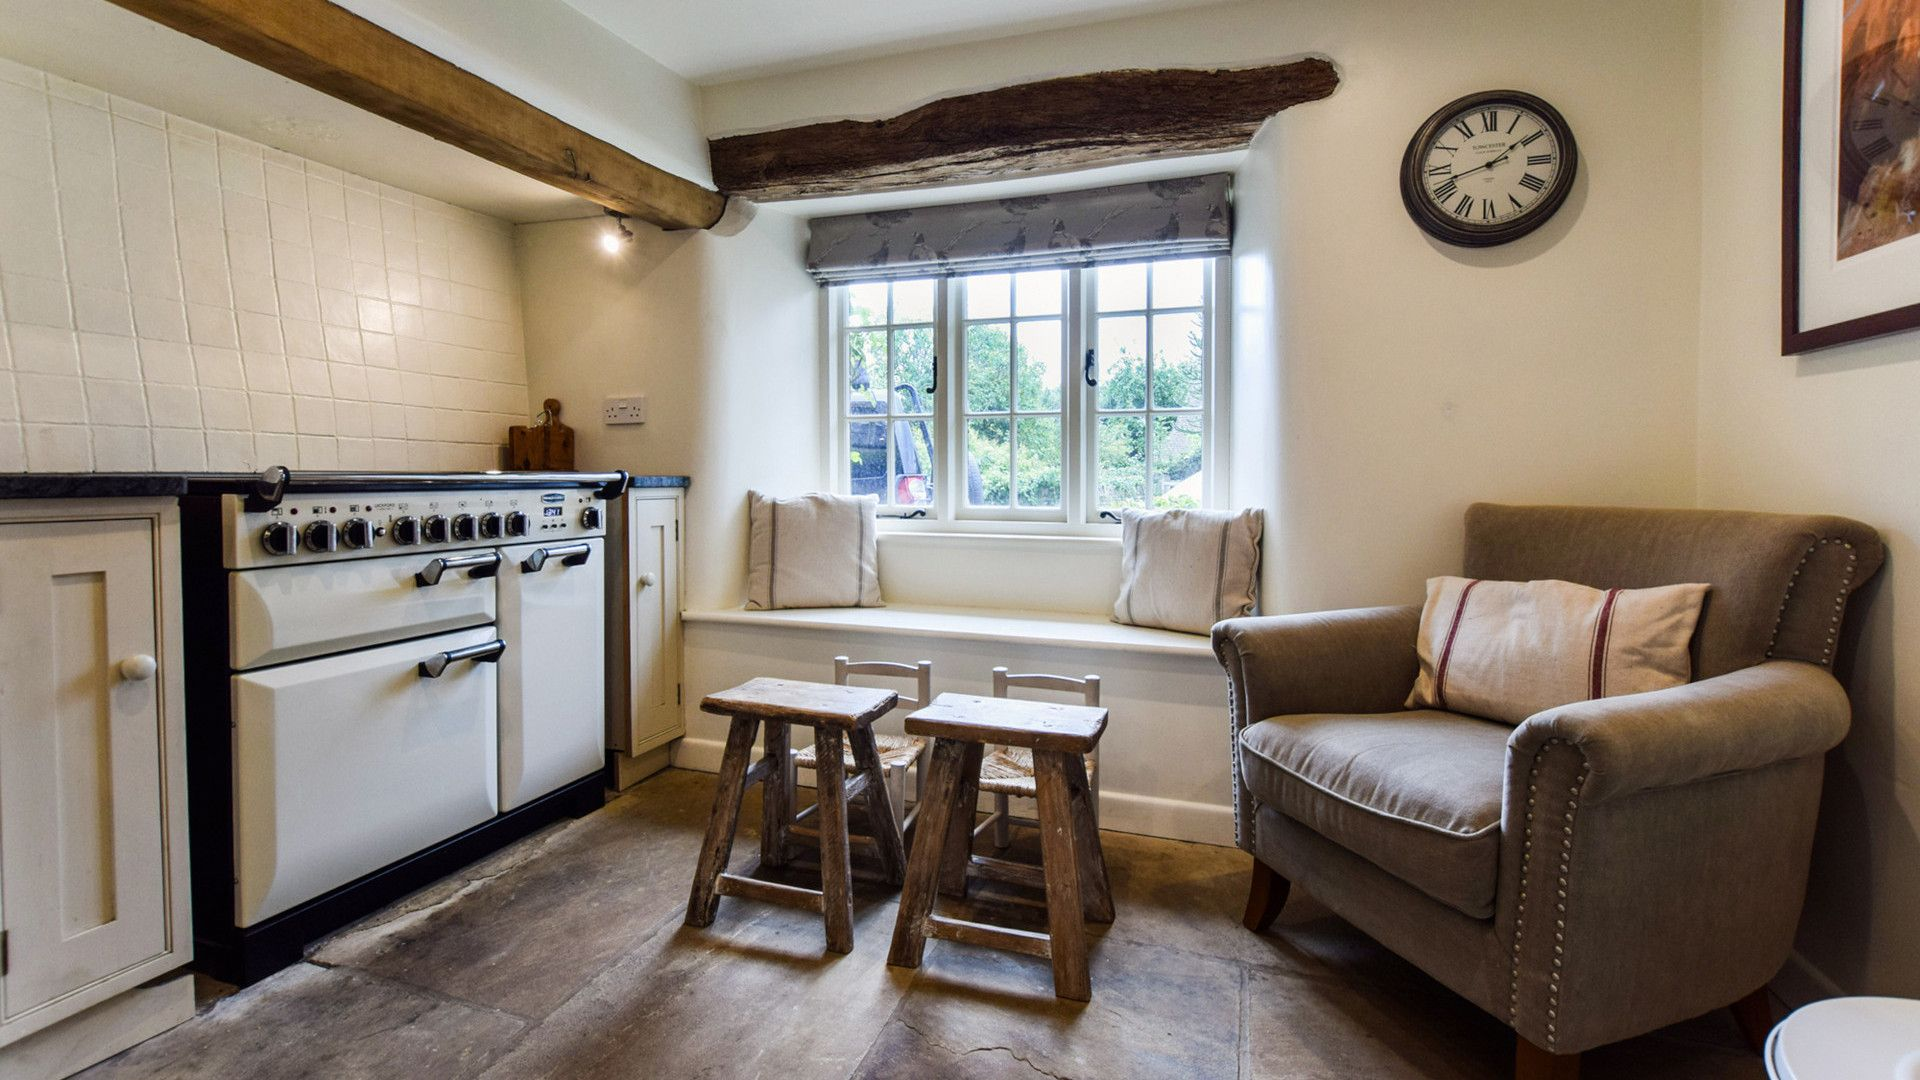 Kitchen with small children's tables, Holly Cottage, Bolthole Retreats